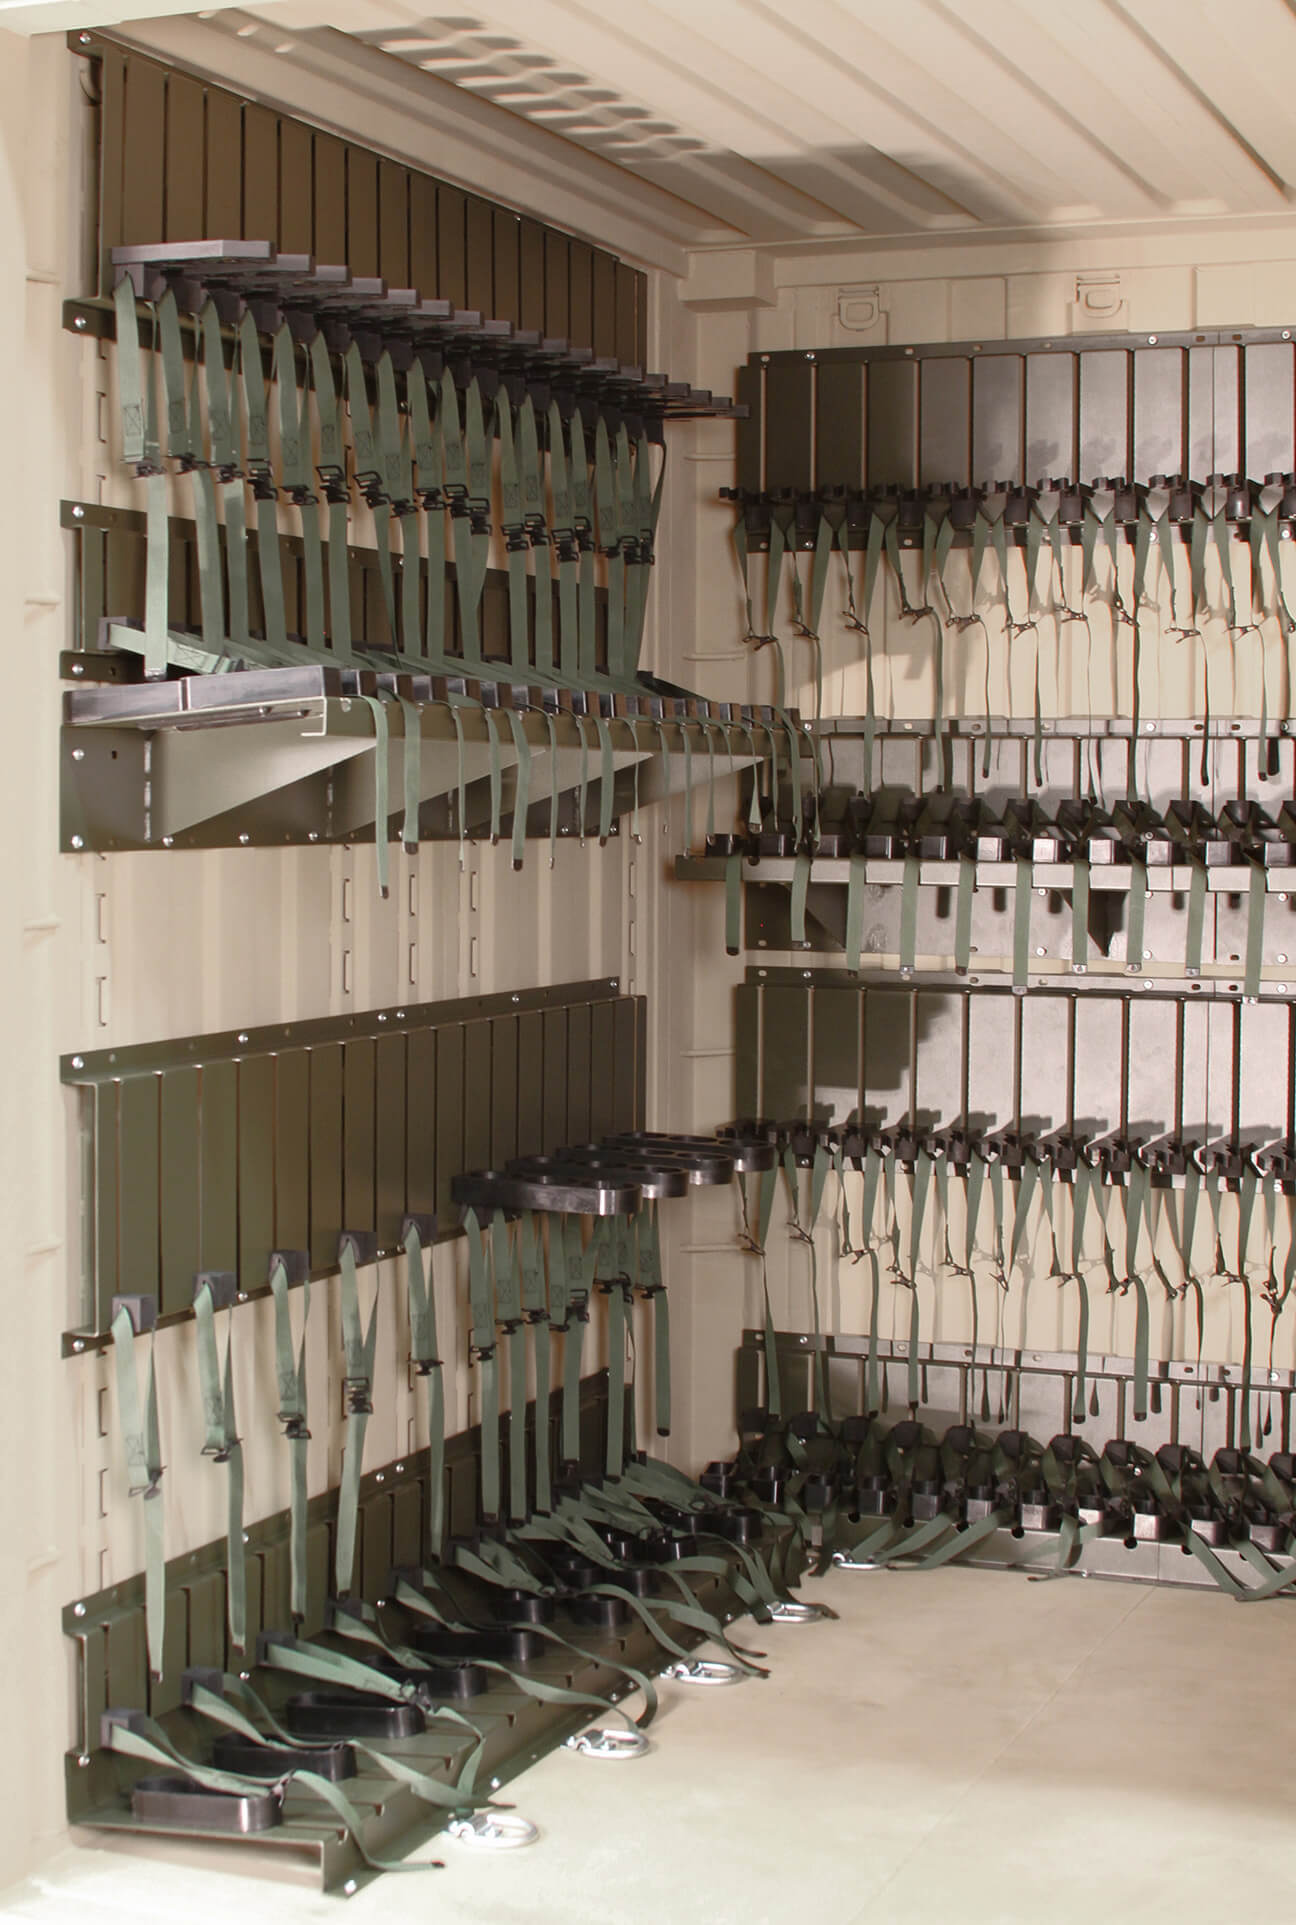 Many weapon configurations for the Universal Expeditionary Weapons storage system